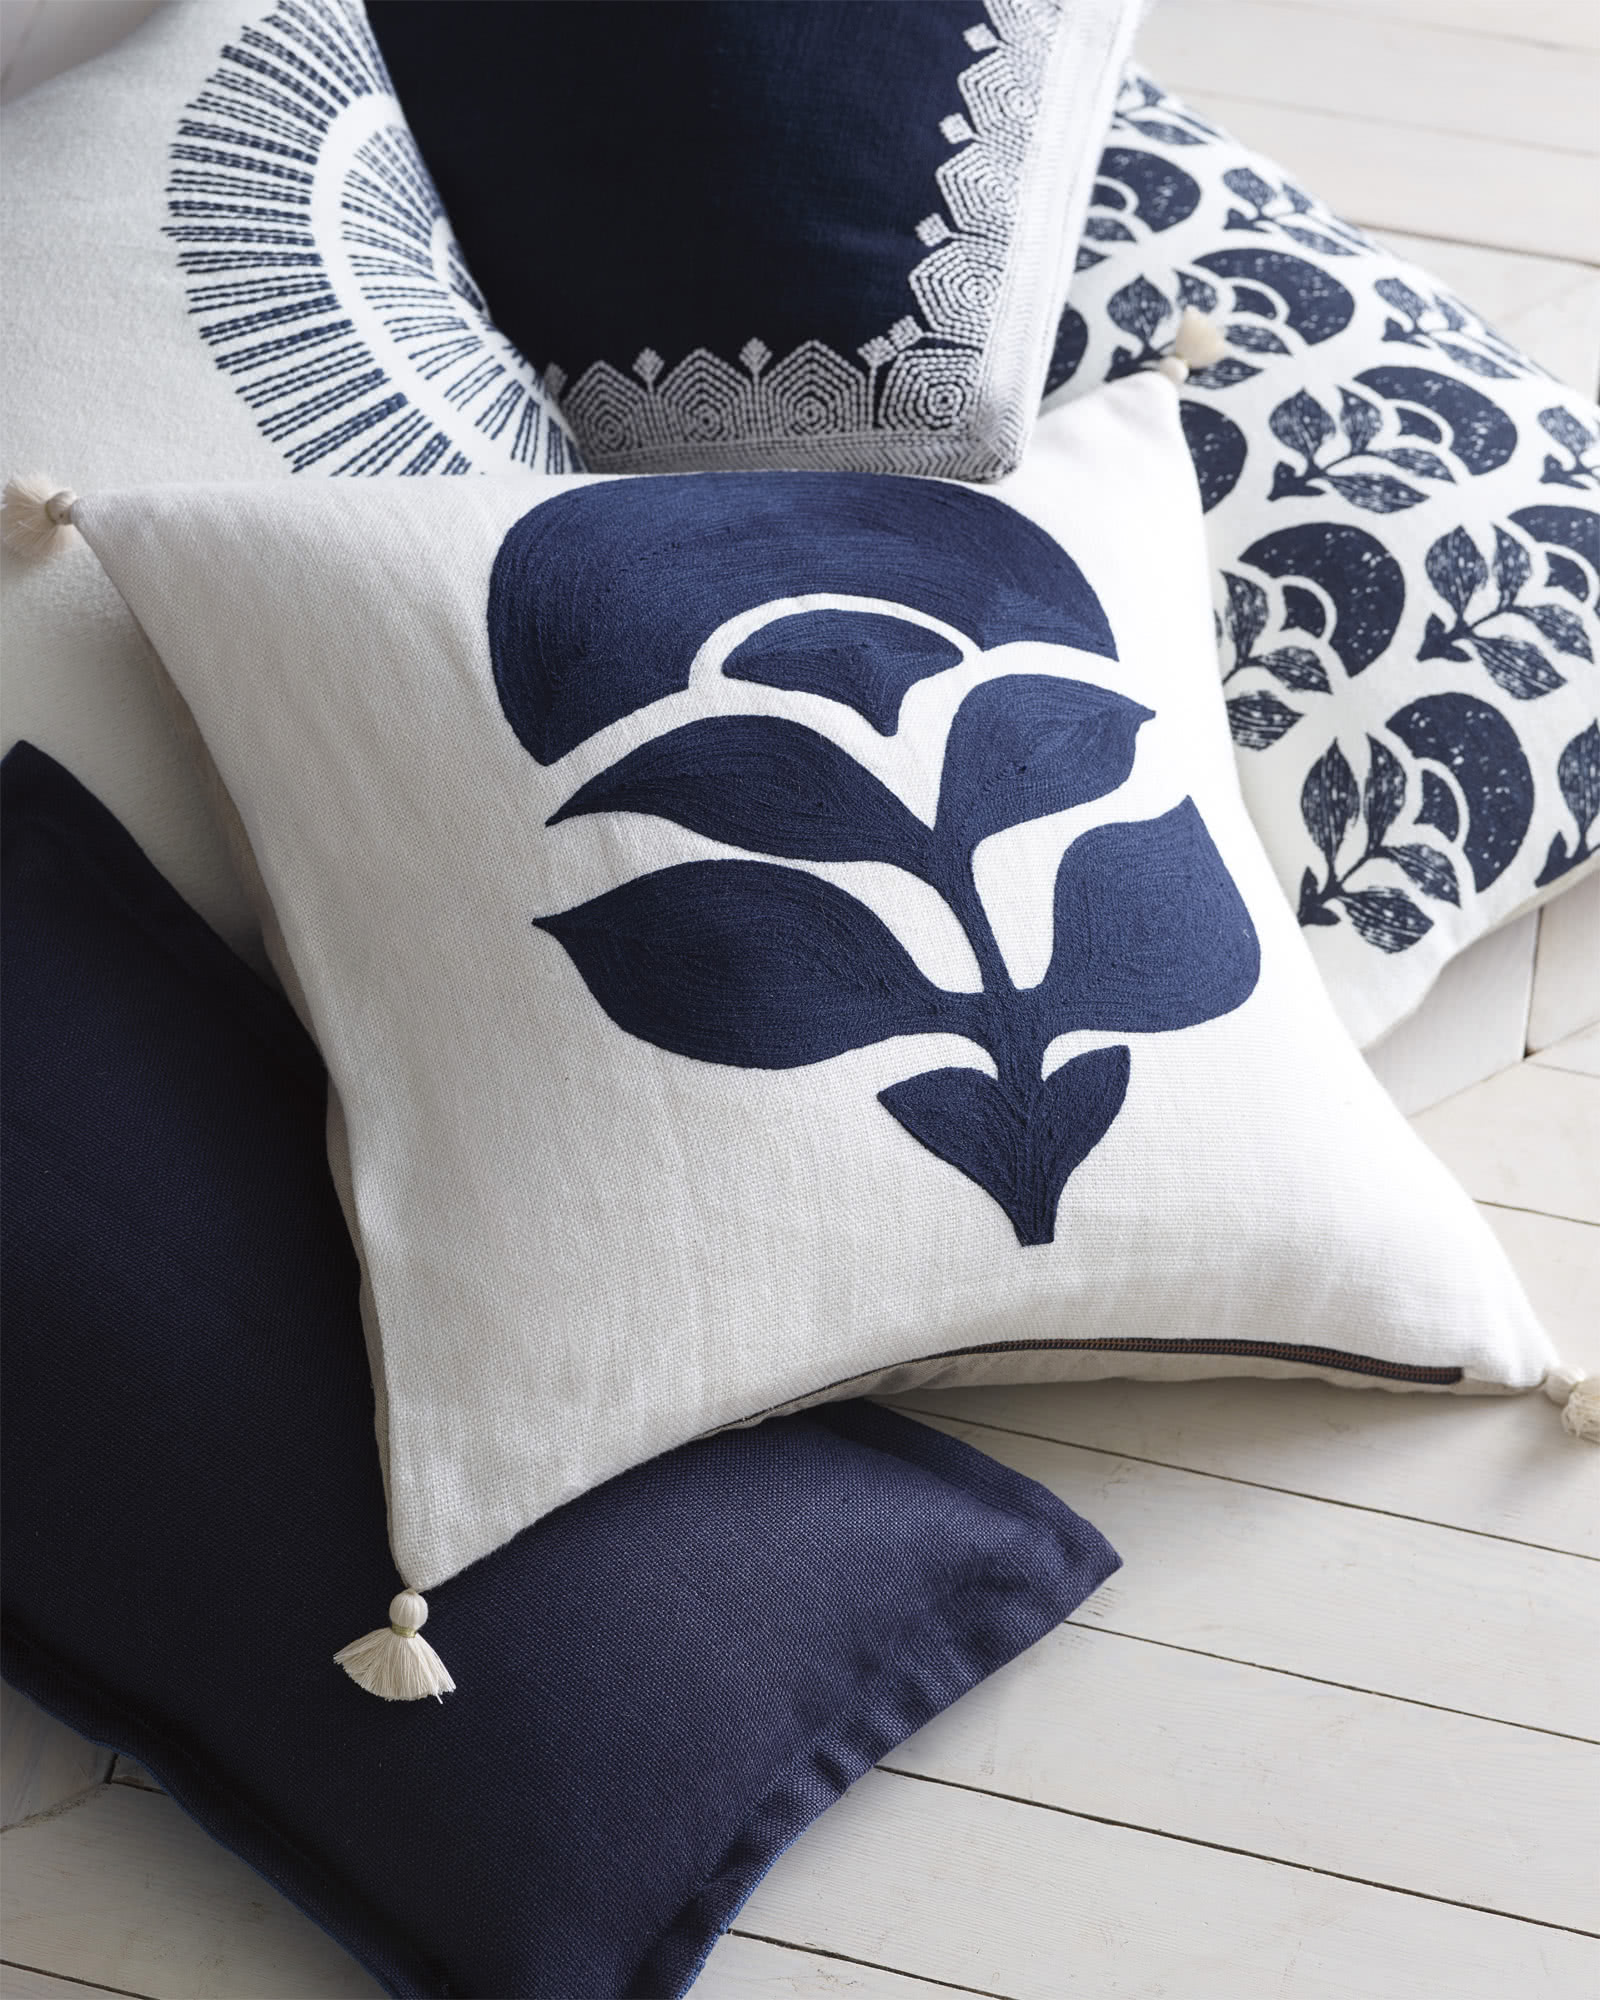 Larkspur Embroidered Pillow Cover,